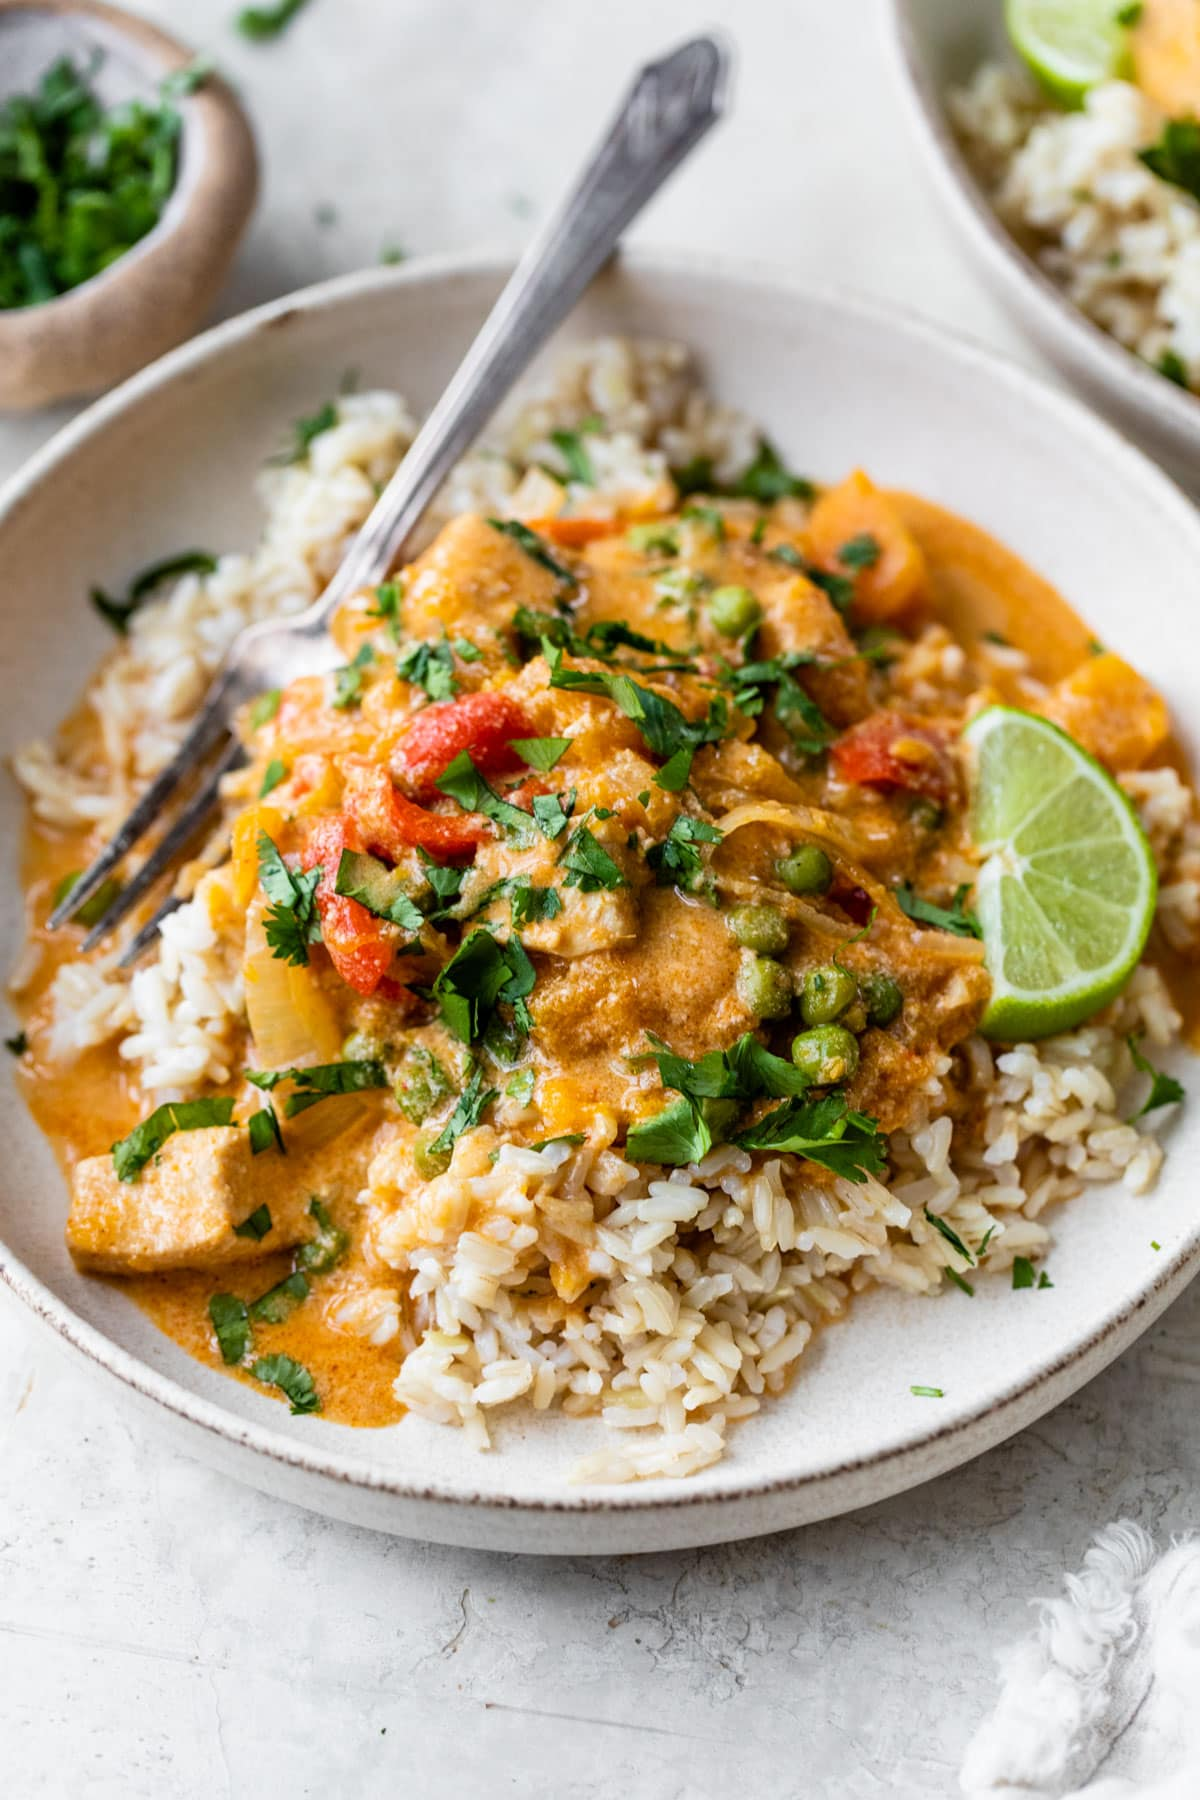 Slow Cooker Thai Chicken. Our favorite slow cooker dinner!